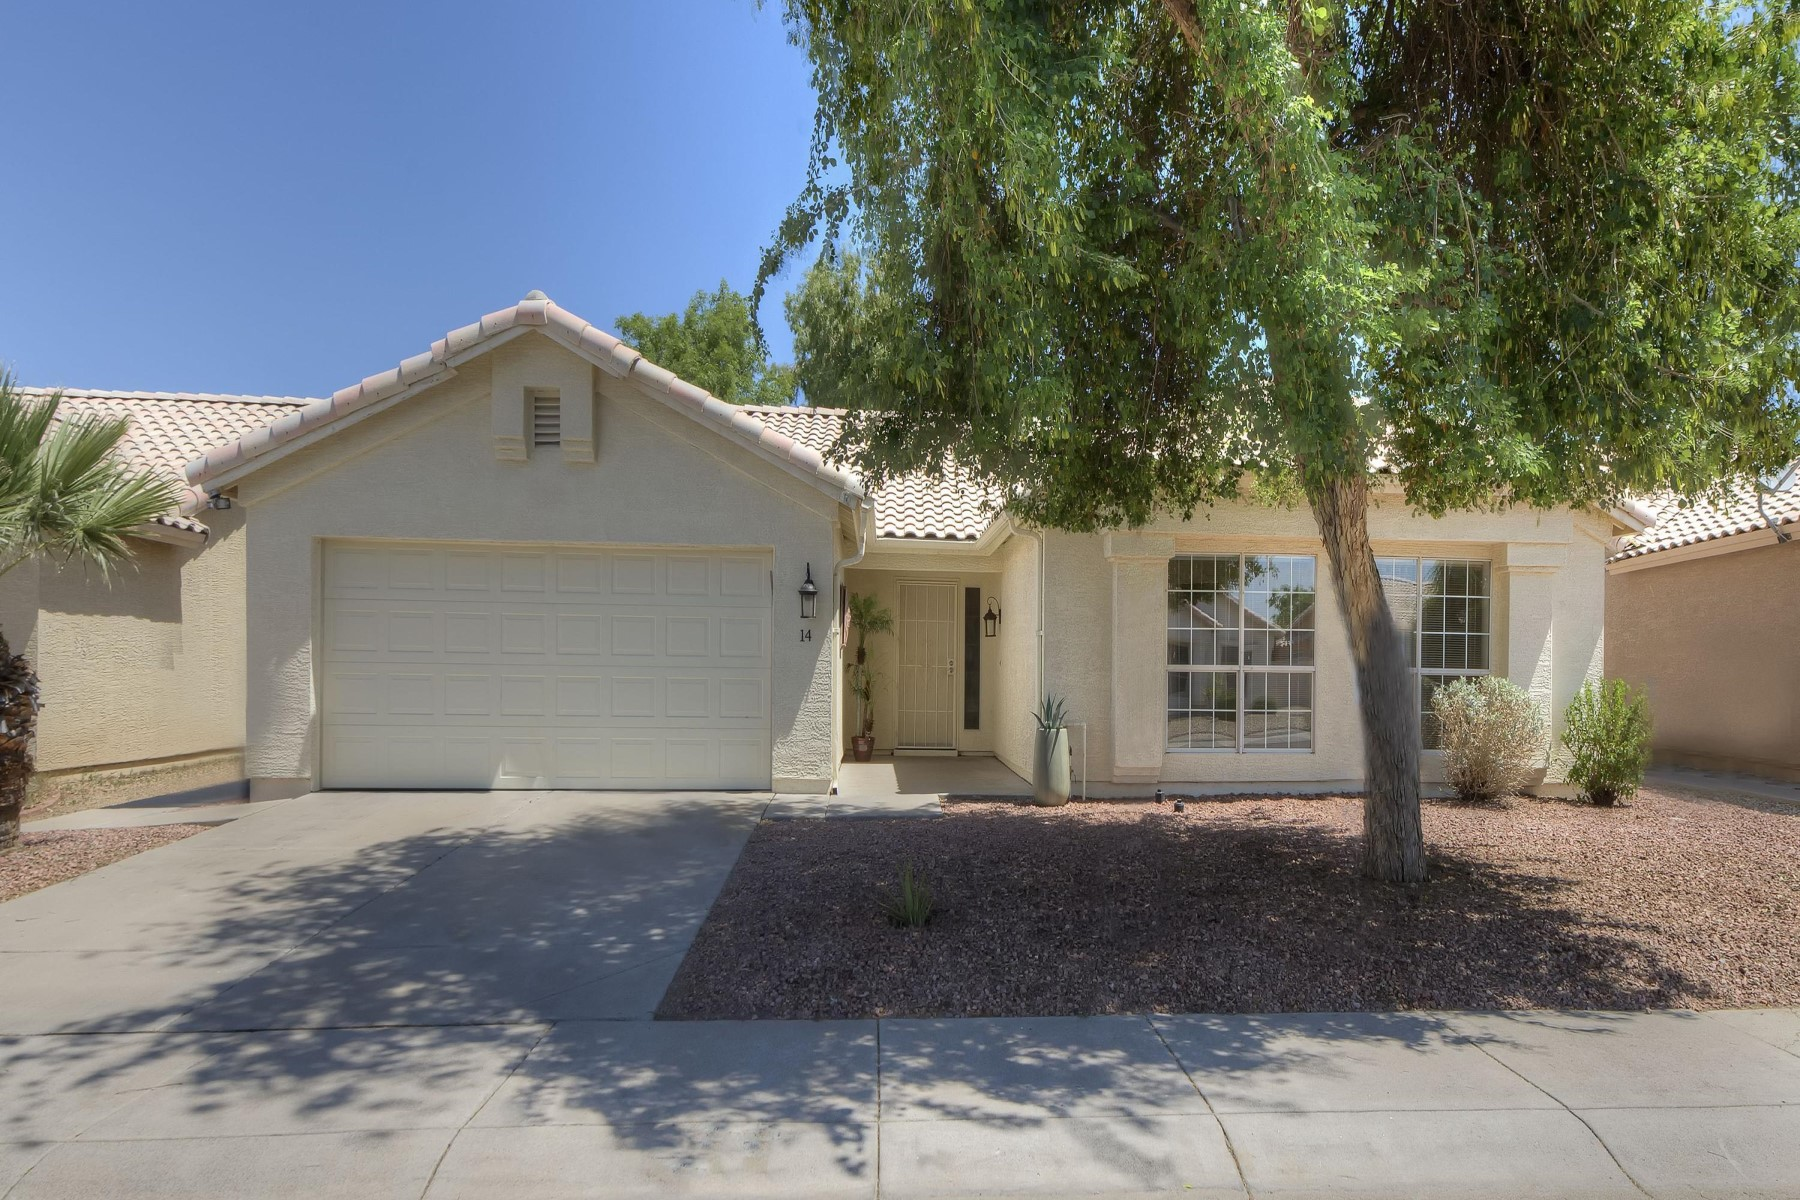 Single Family Home for Sale at Amazing remodel from new flooring to fixtures. 14 W MARCO POLO RD Phoenix, Arizona 85027 United States